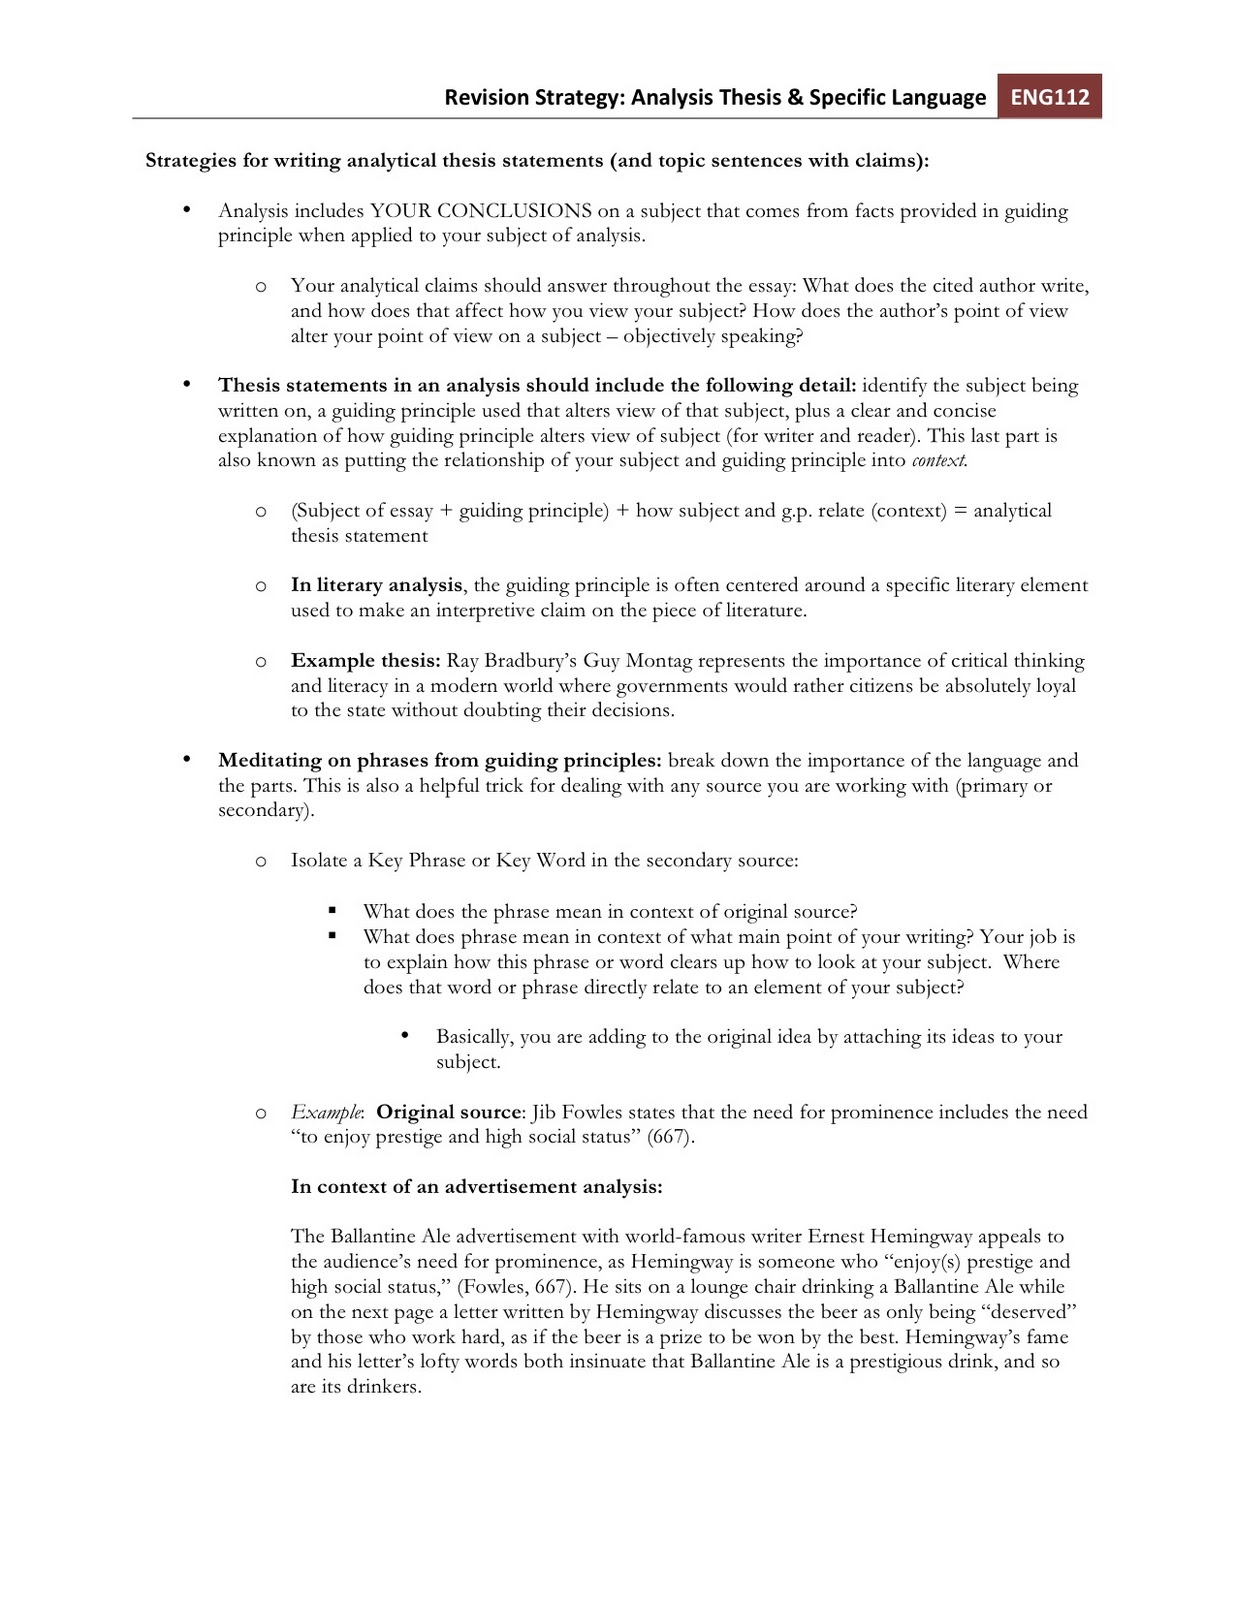 literary essay thesis examples critical analysis thesis statements  critical analysis thesis statements write critical analysis thesis statement slideplayer critical essay thesis statement examples custom